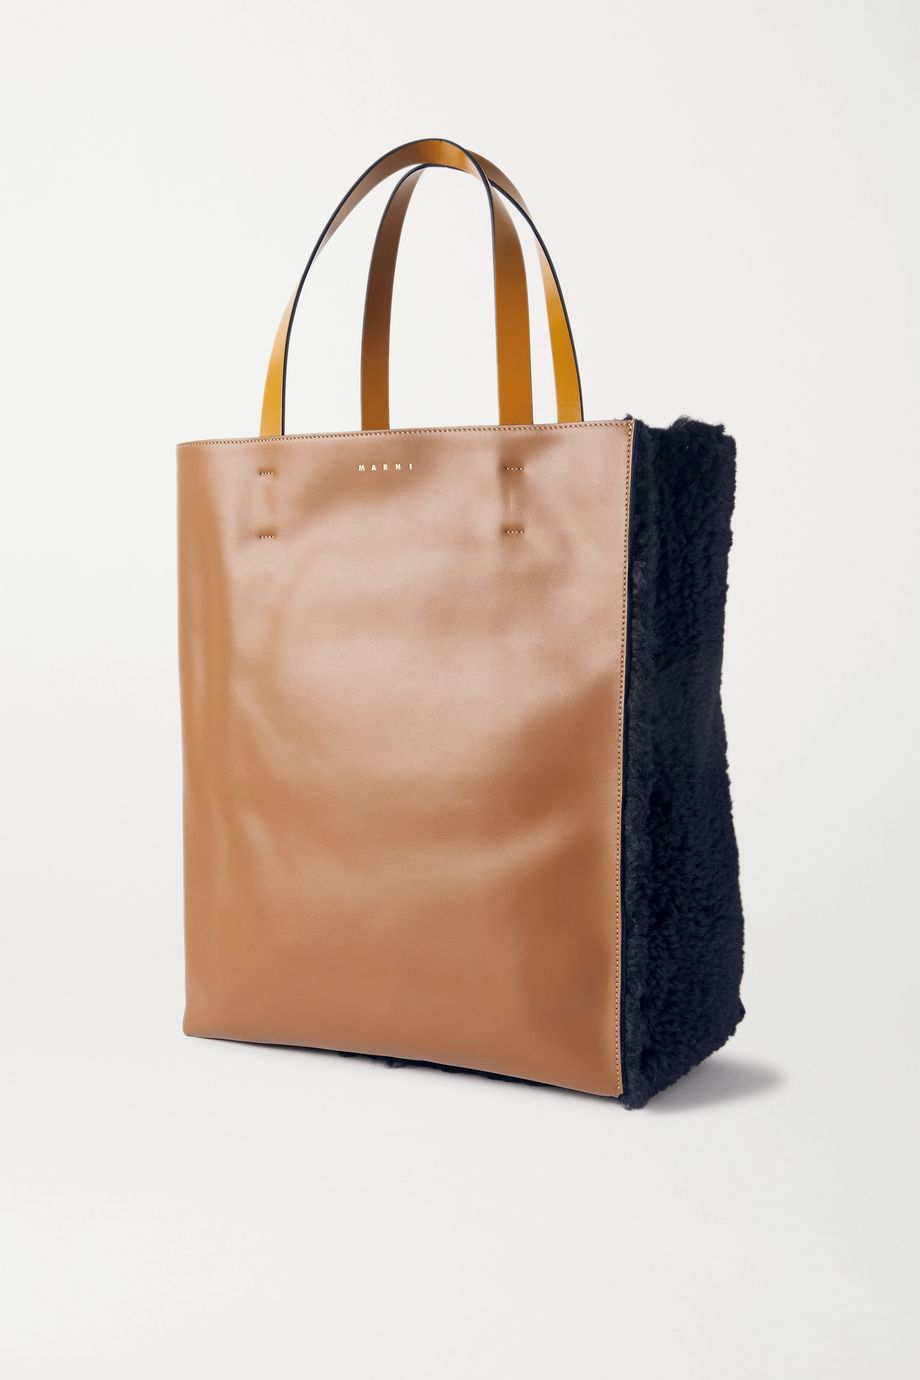 Marni Museo shearling and leather tote